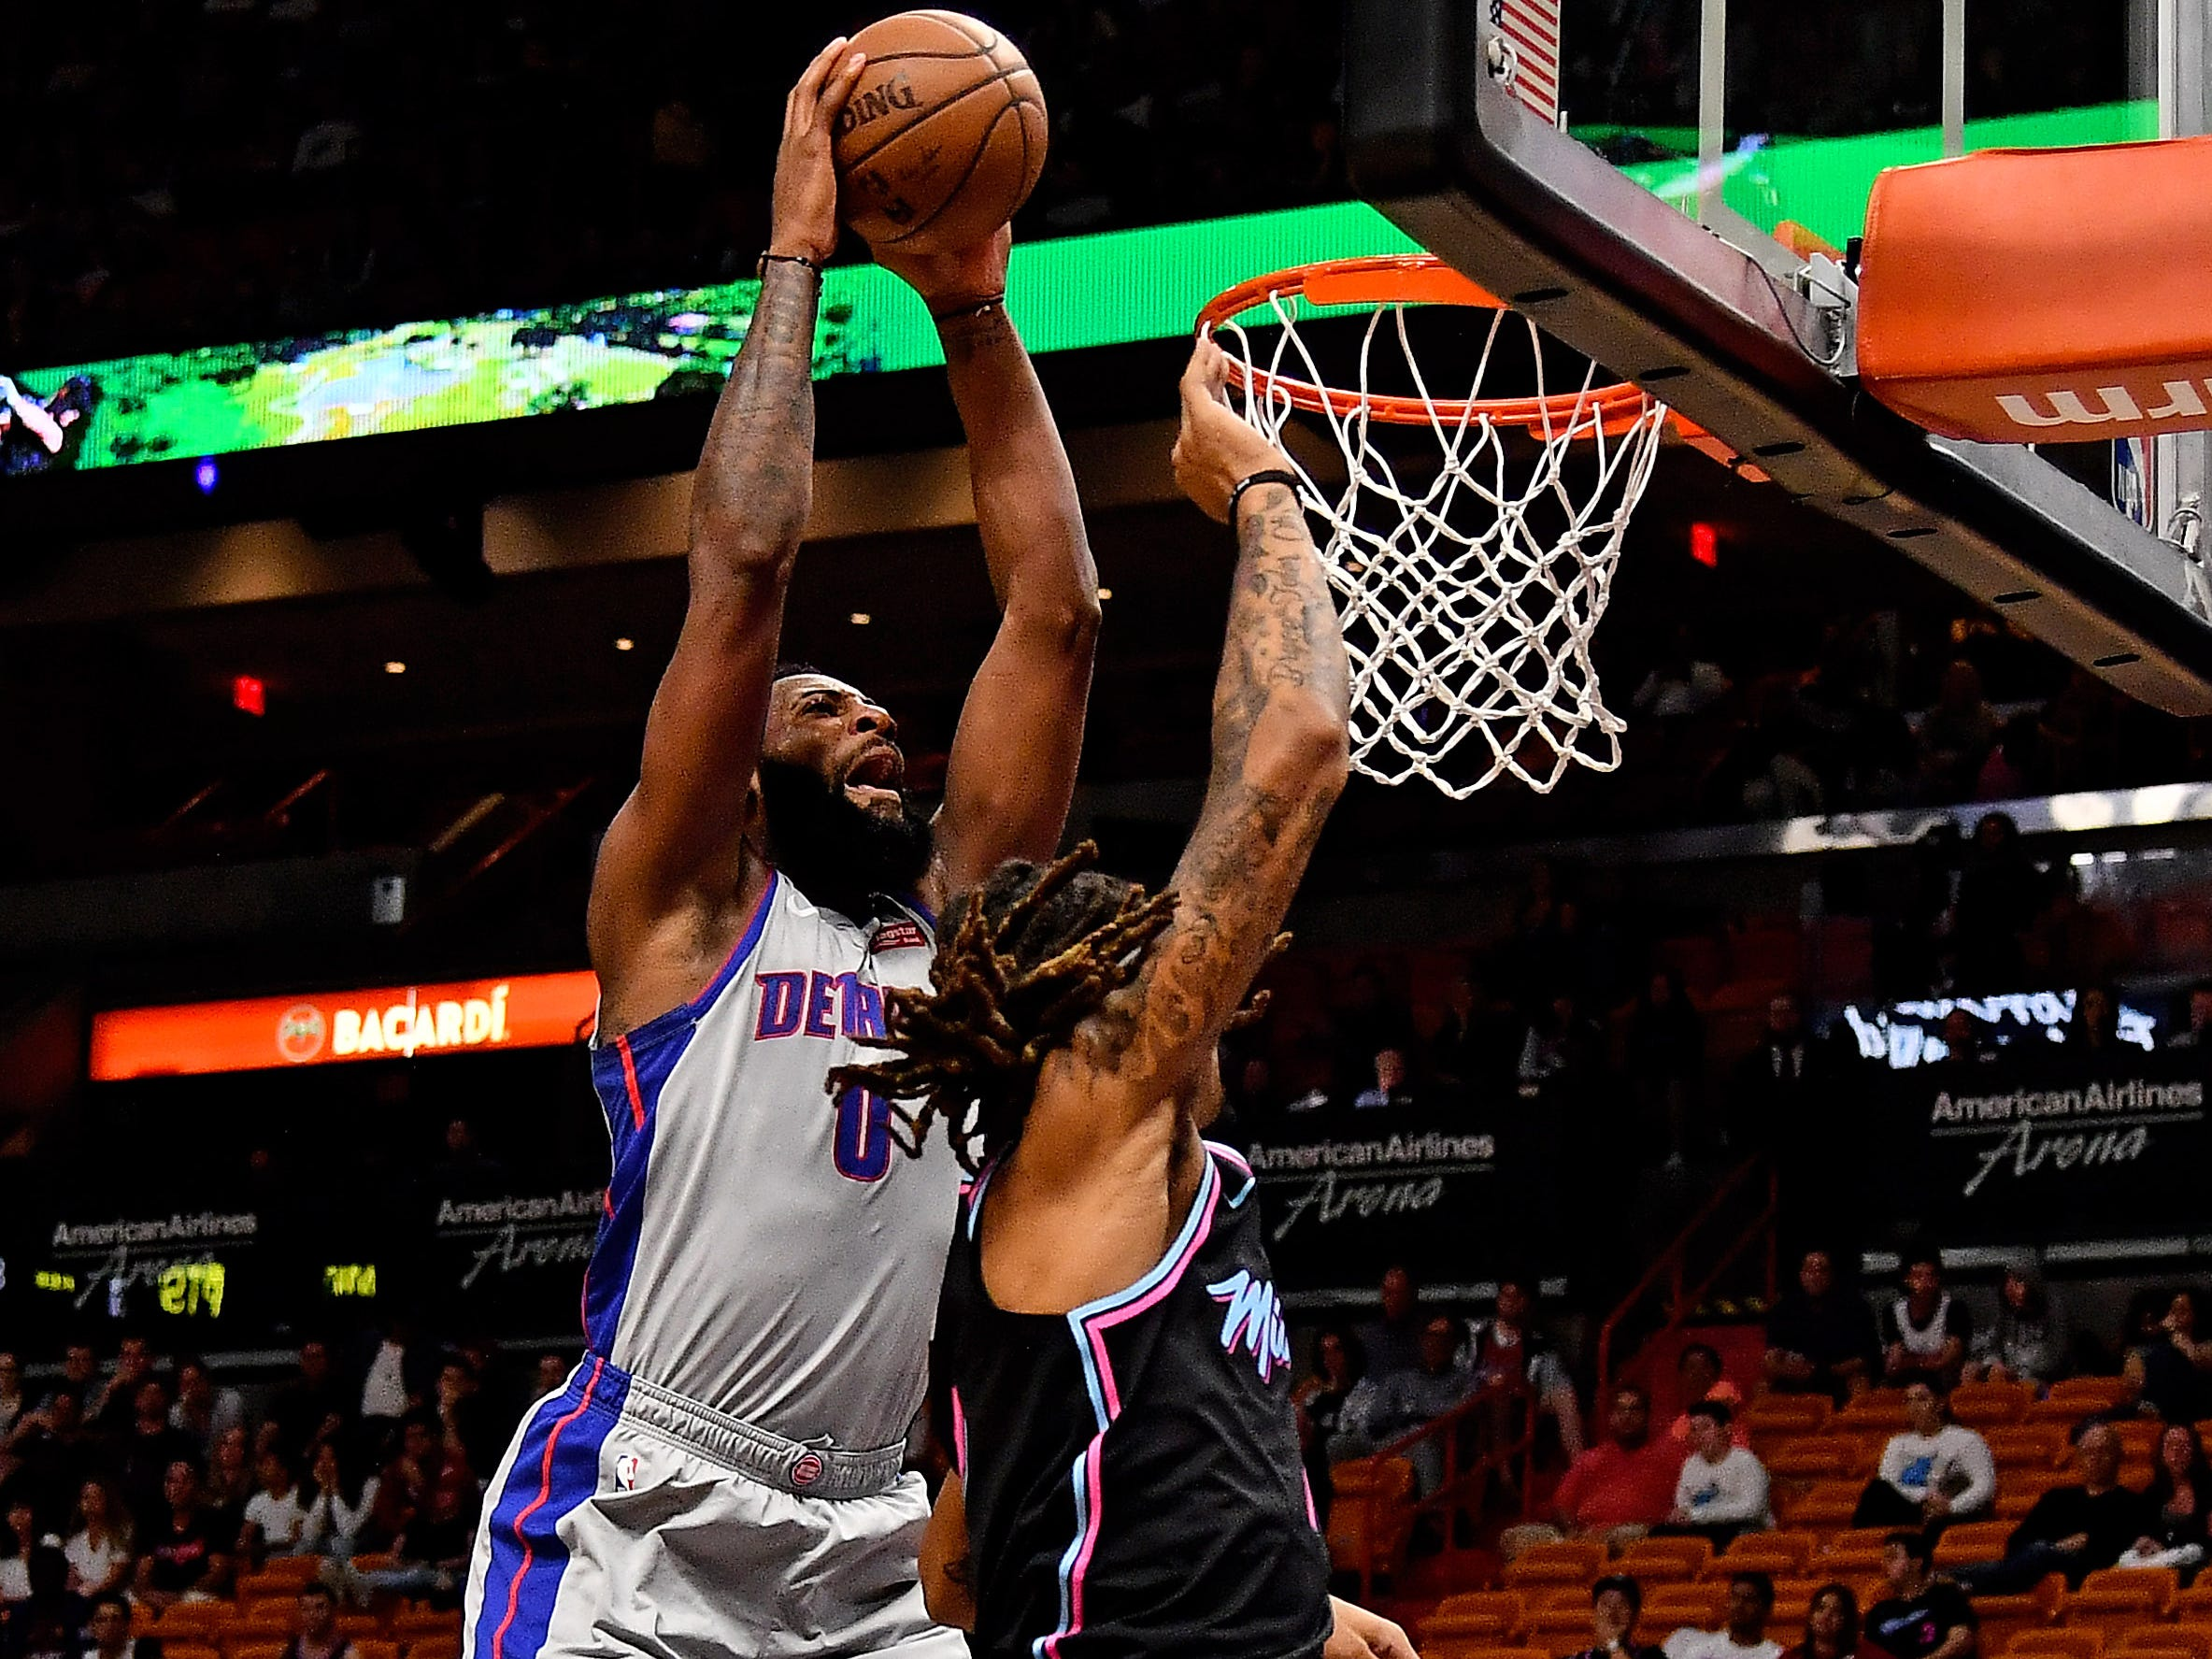 Feb. 23: Pistons center Andre Drummond (0) throws down the monster two-handed flush over Heat defender Emanuel Terry (12).